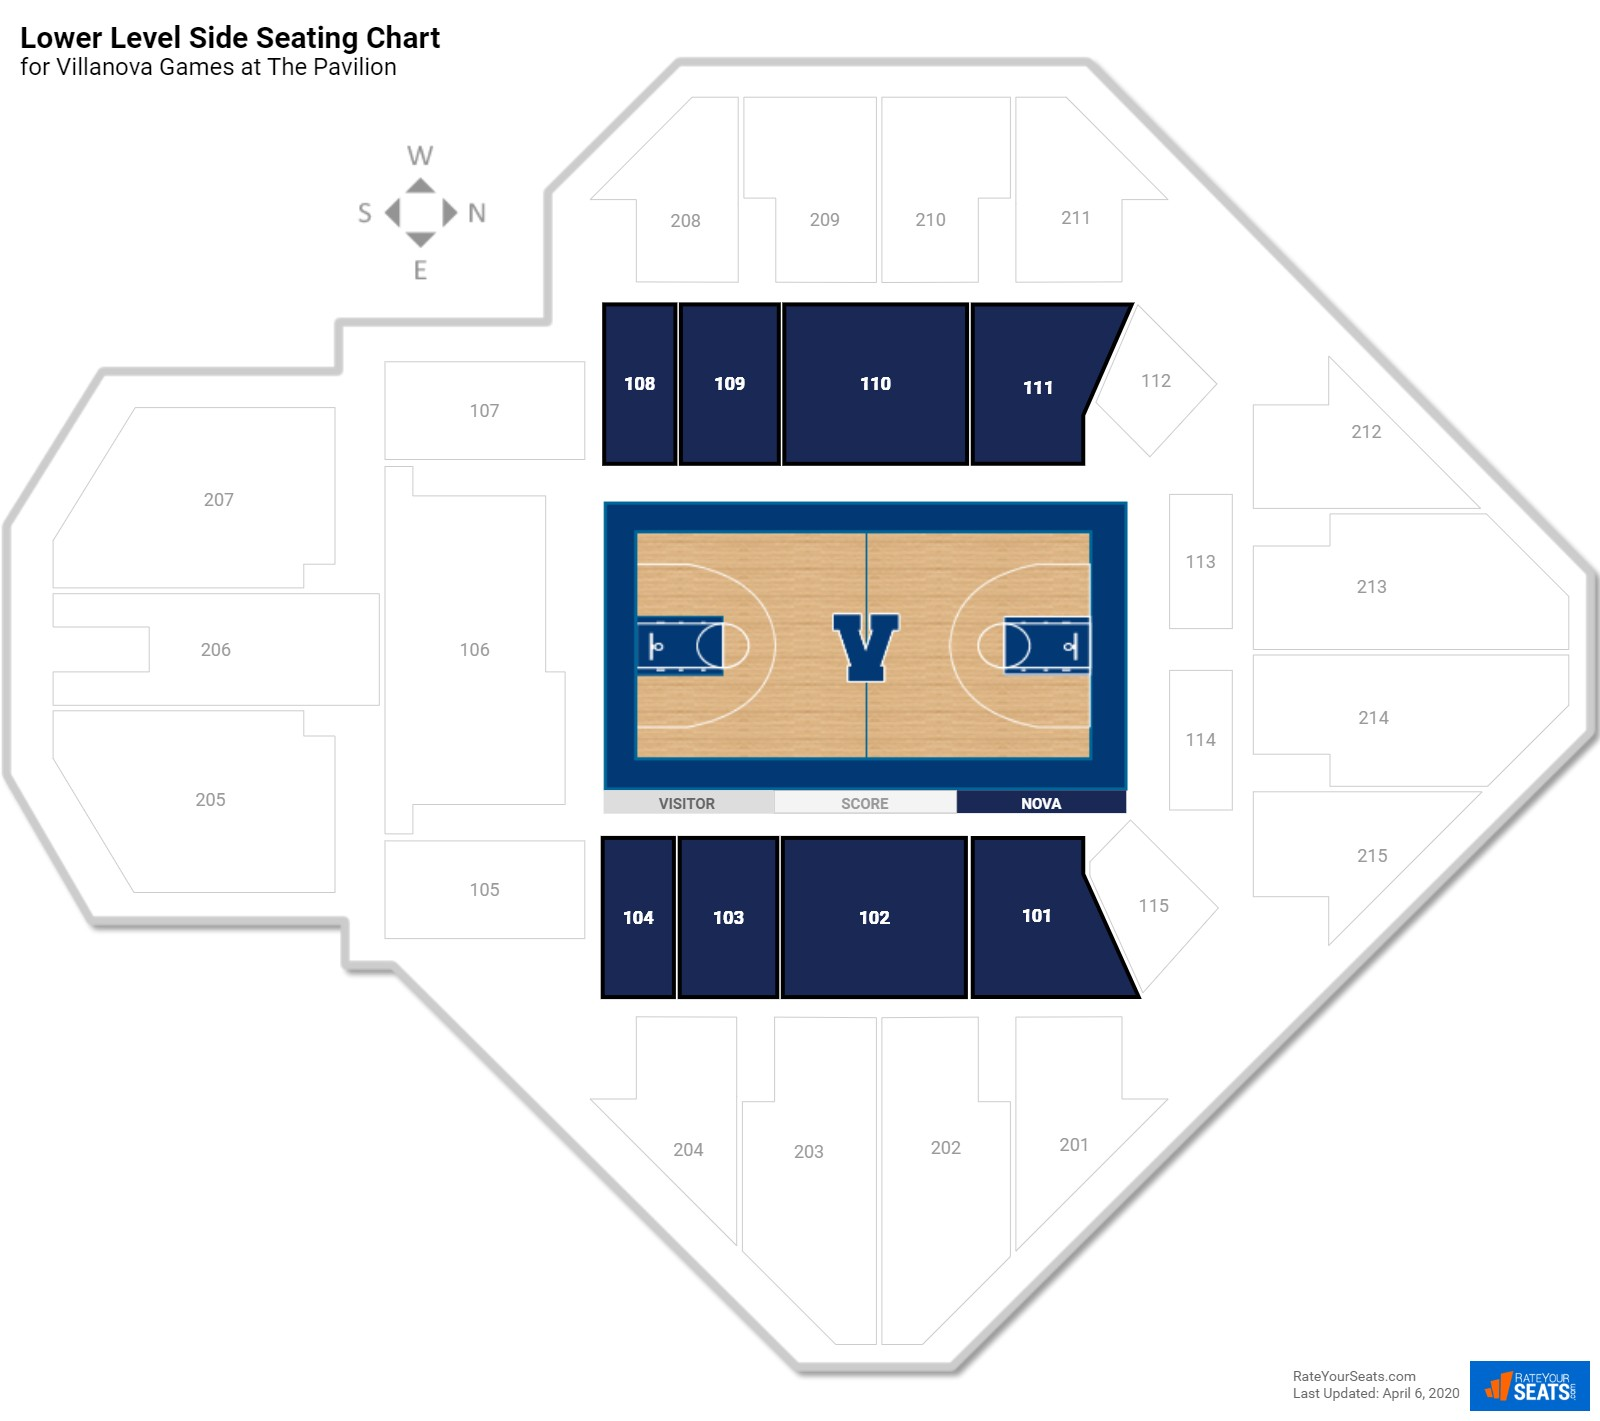 The Pavilion Lower Level Side Seating Chart